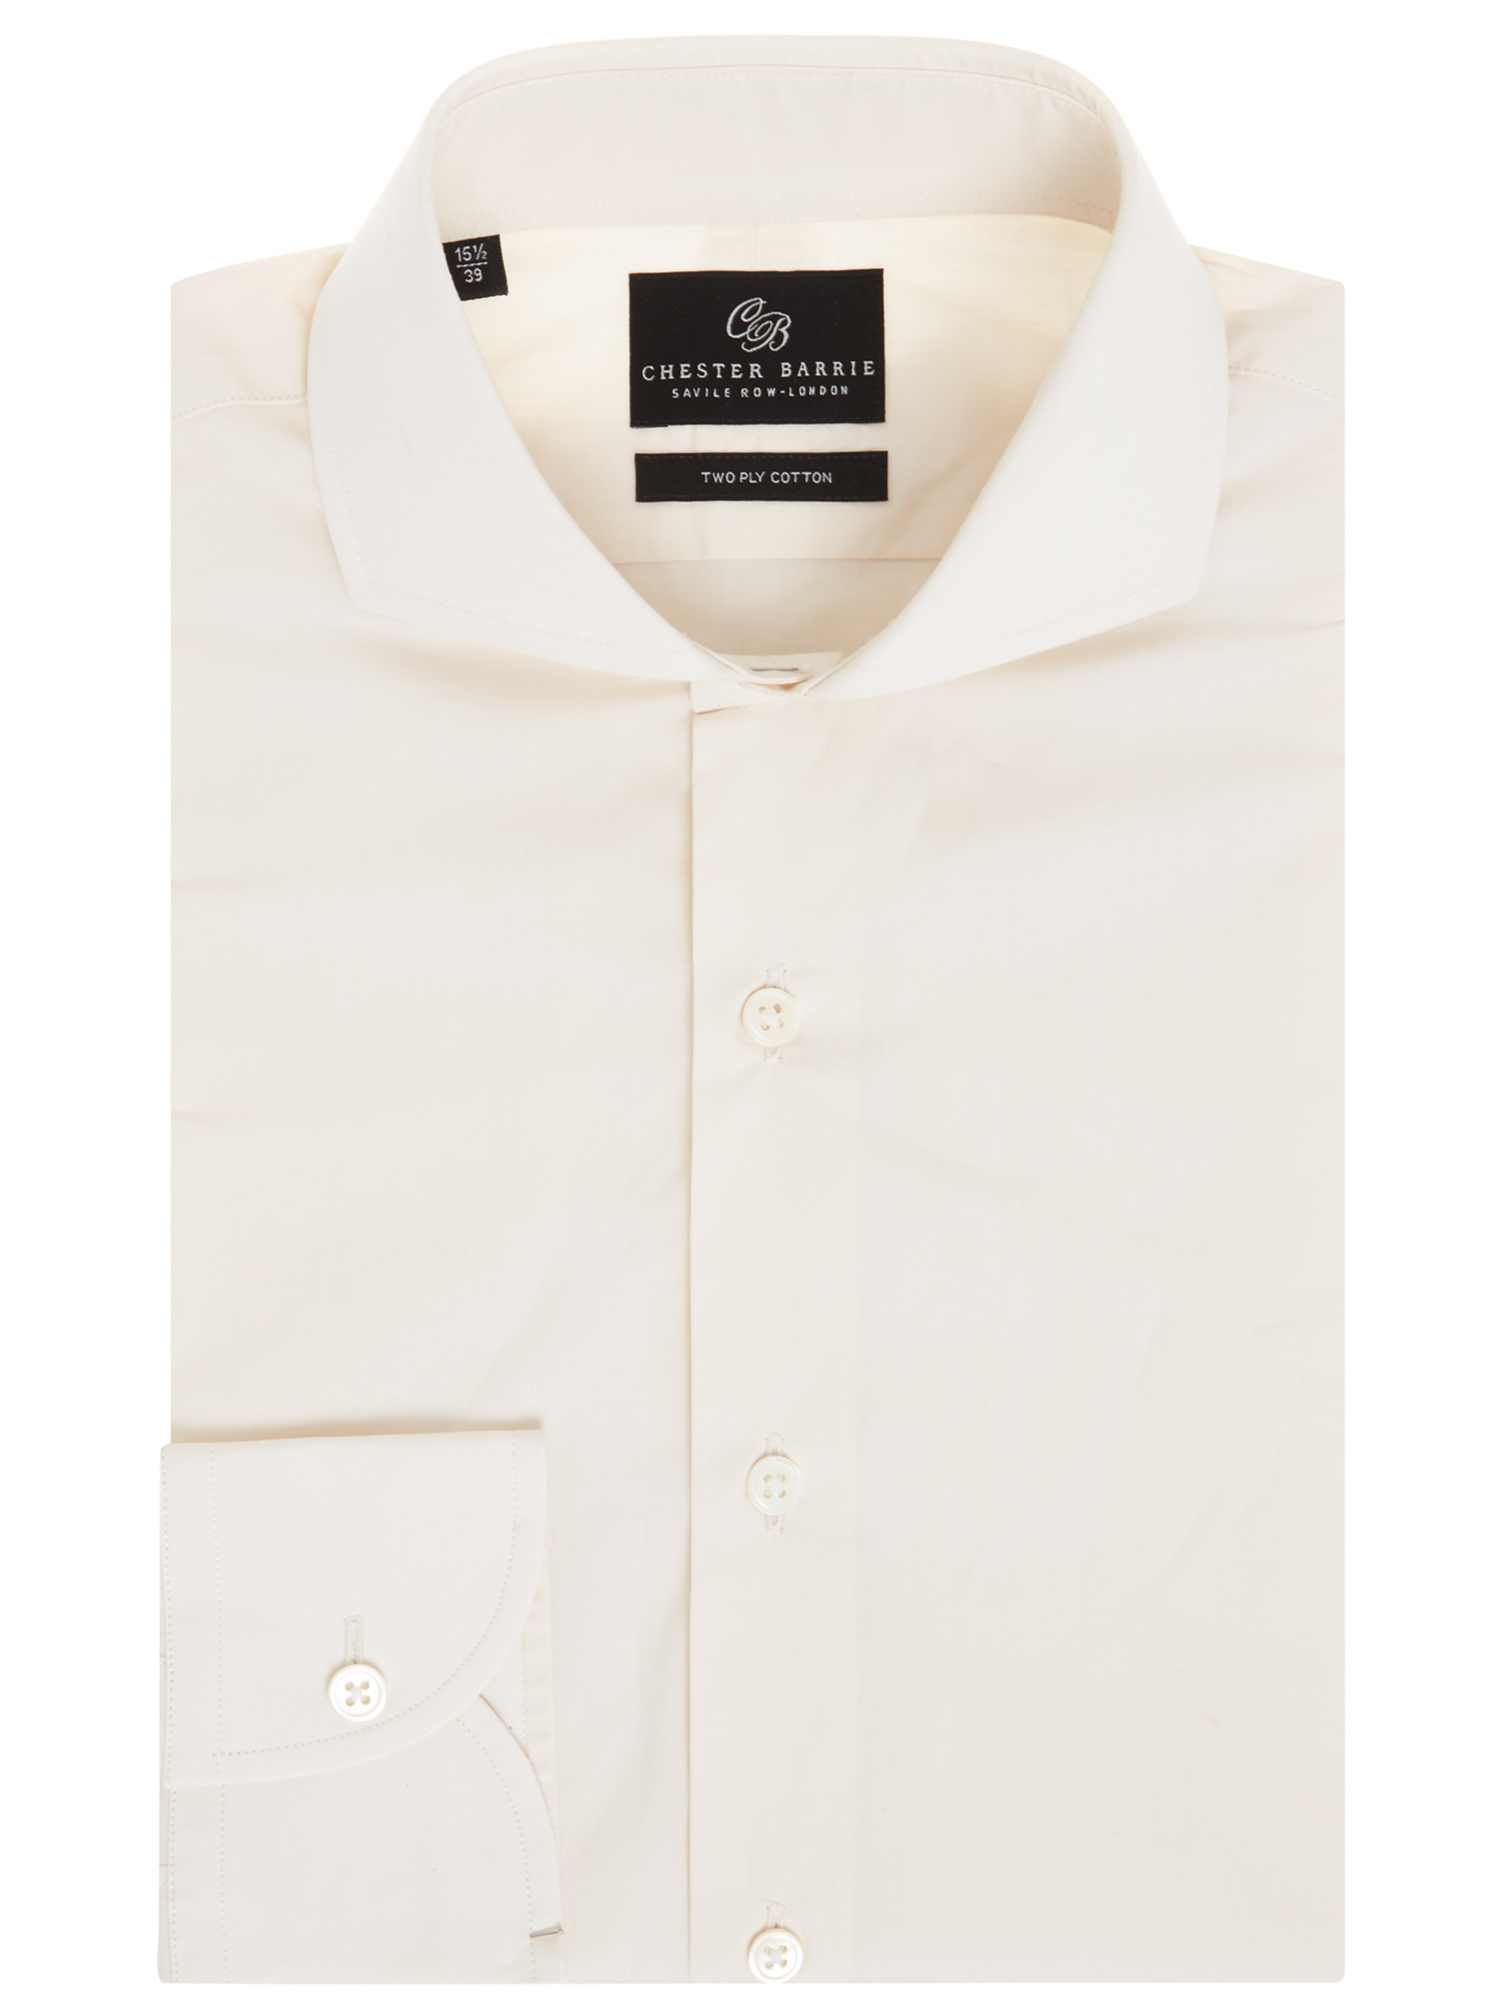 CHESTER BARRIE FINE CHAMBRAY SHIRT